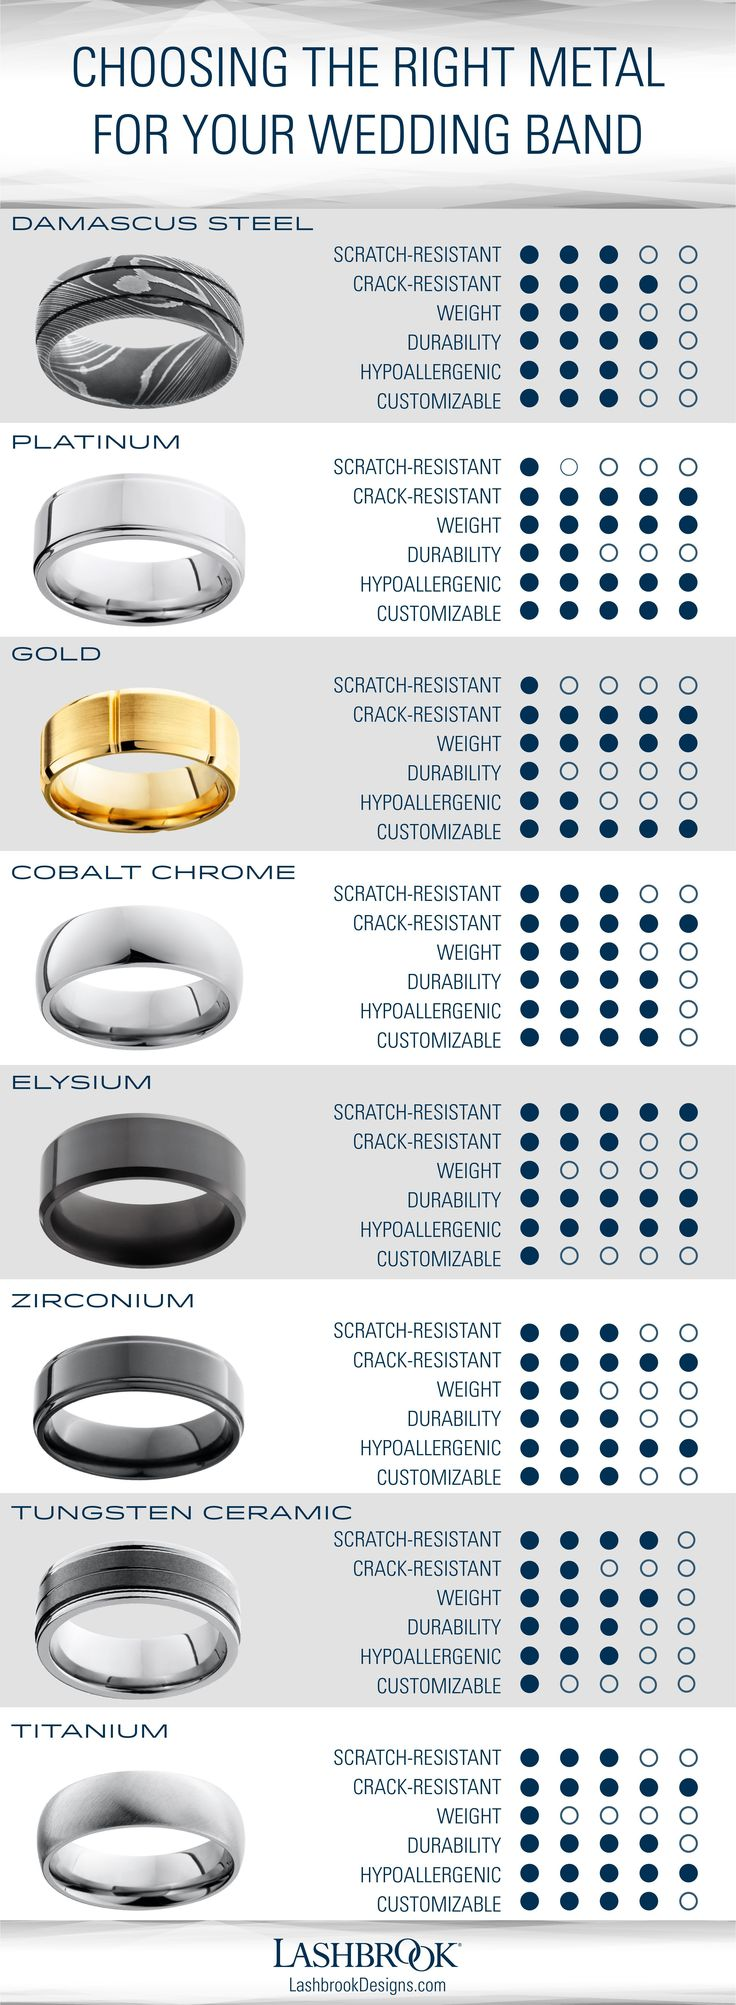 There are more wedding band metal options now than ever before. Which one best m…